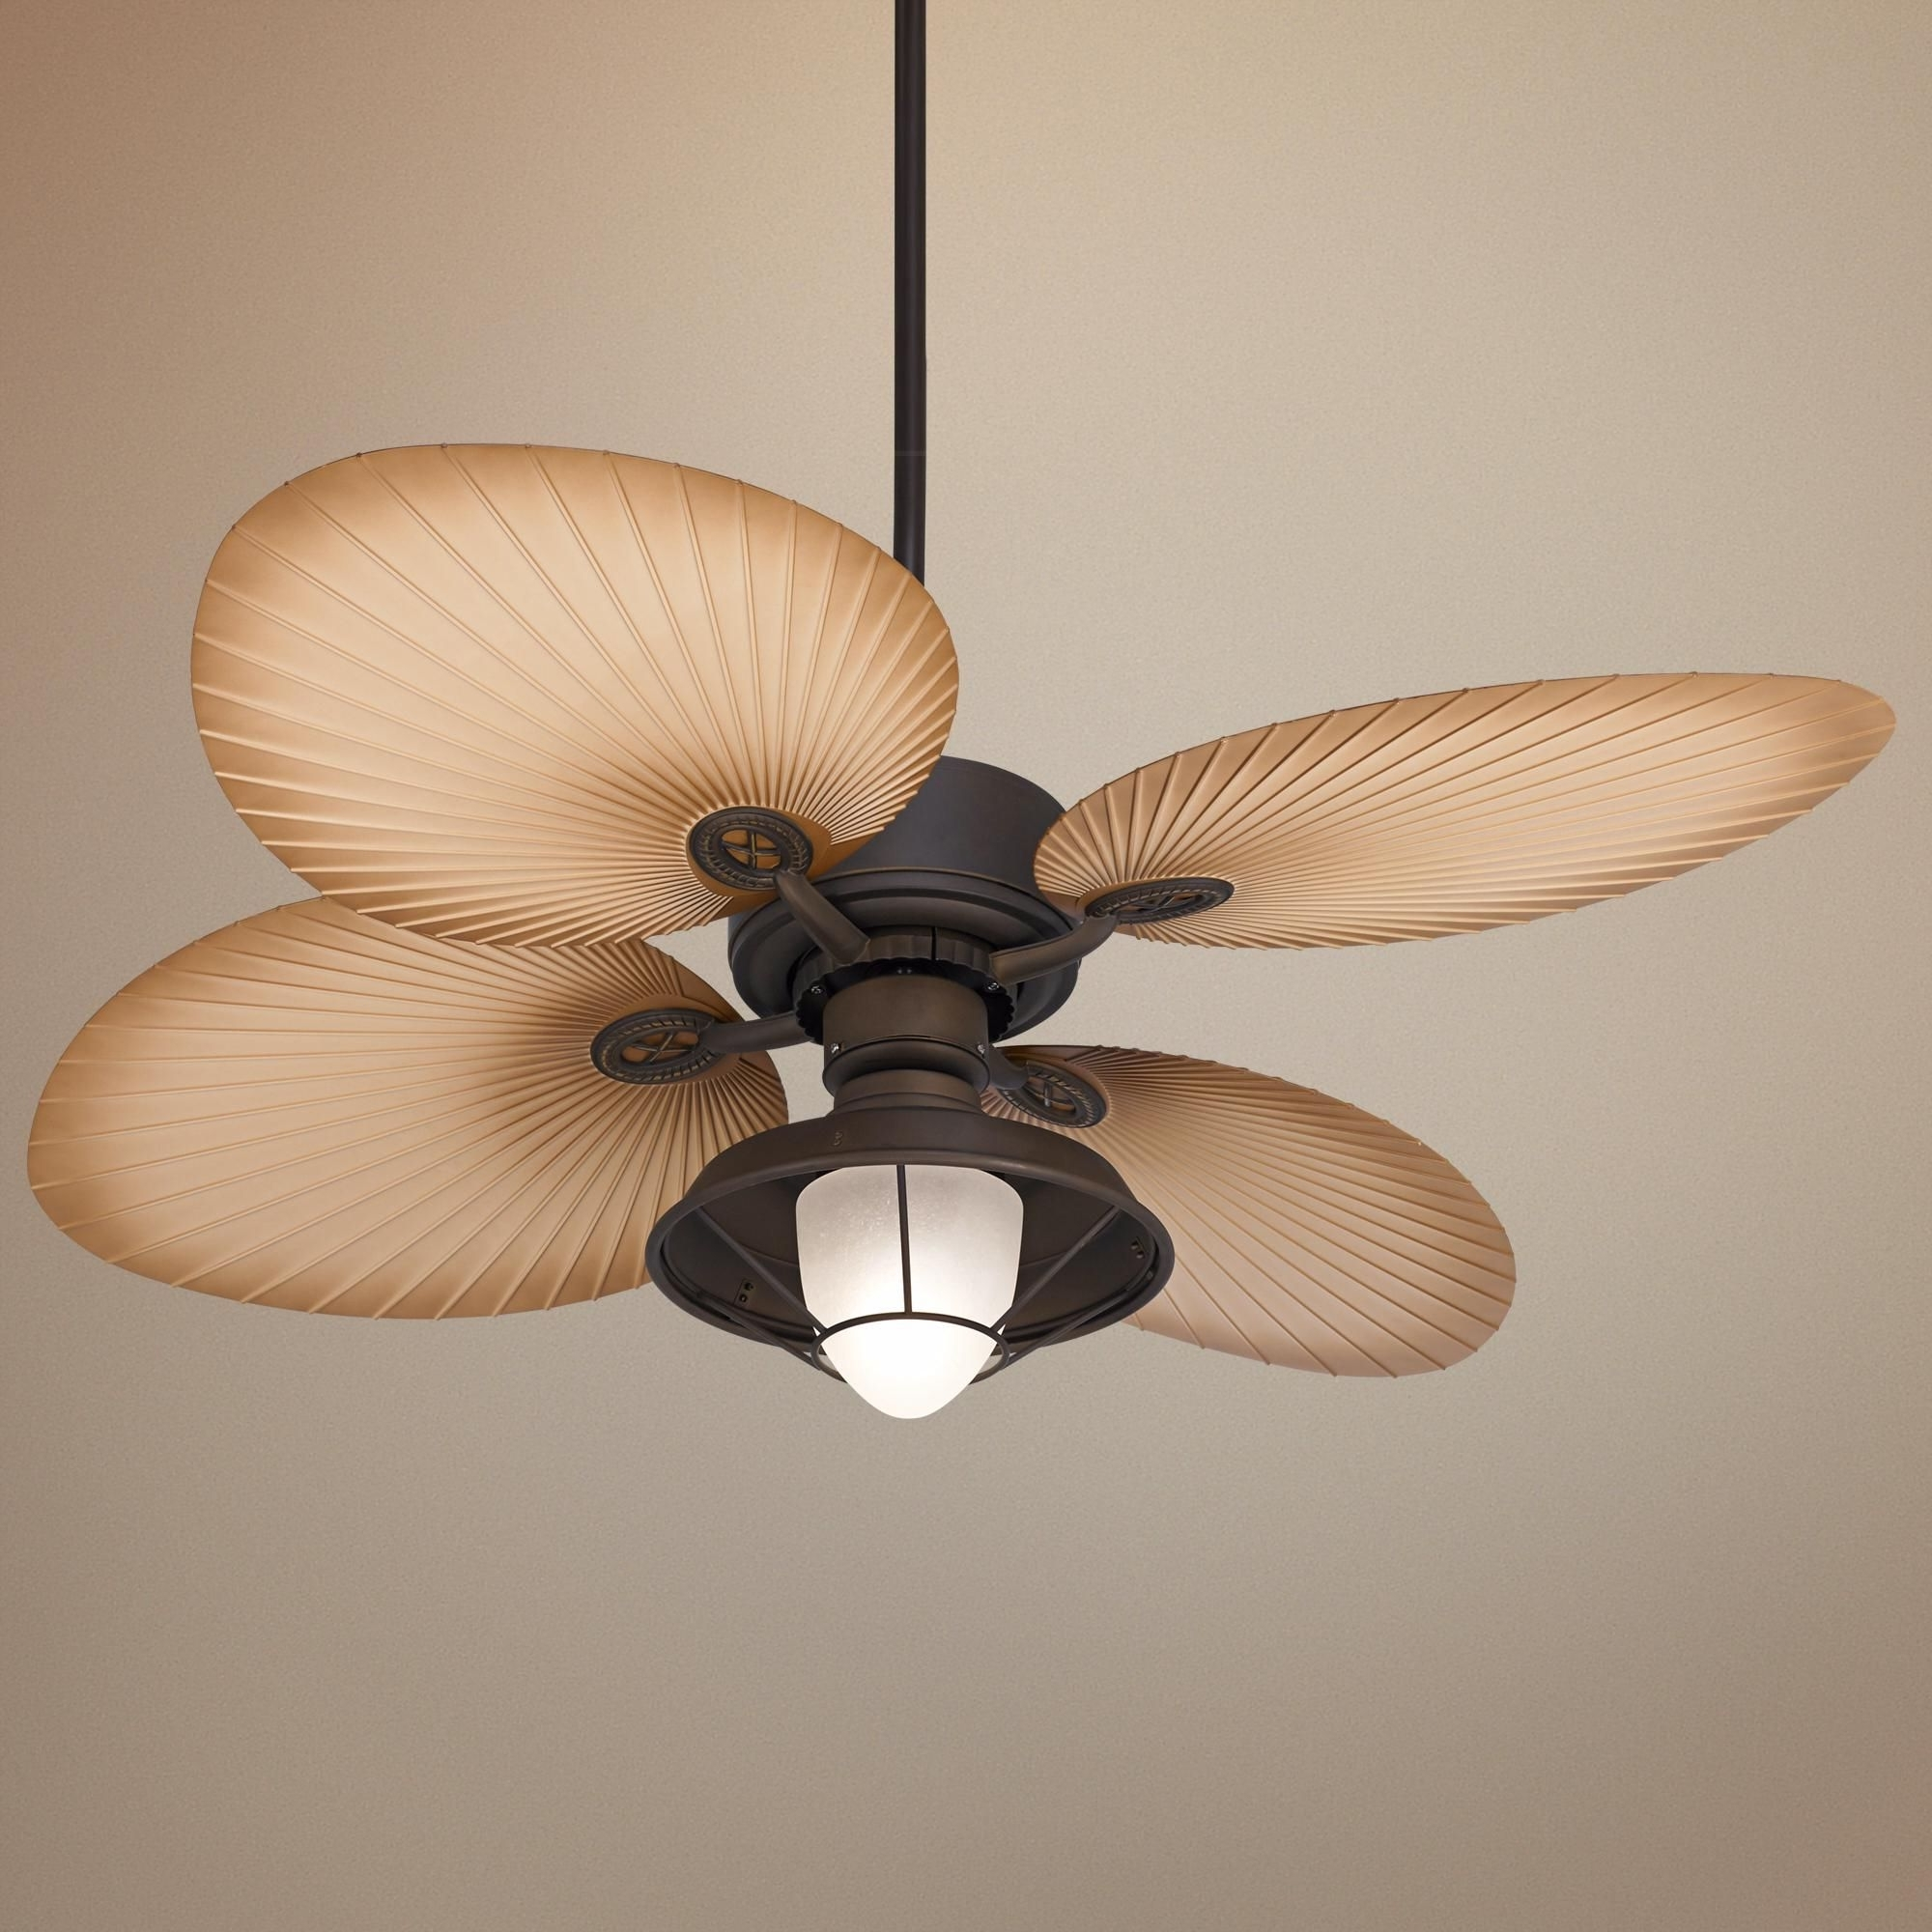 "52"" Casa Vieja Aerostat Wide Palm Bronze Outdoor Ceiling Fan Intended For Most Current 72 Predator Bronze Outdoor Ceiling Fans With Light Kit (View 3 of 20)"